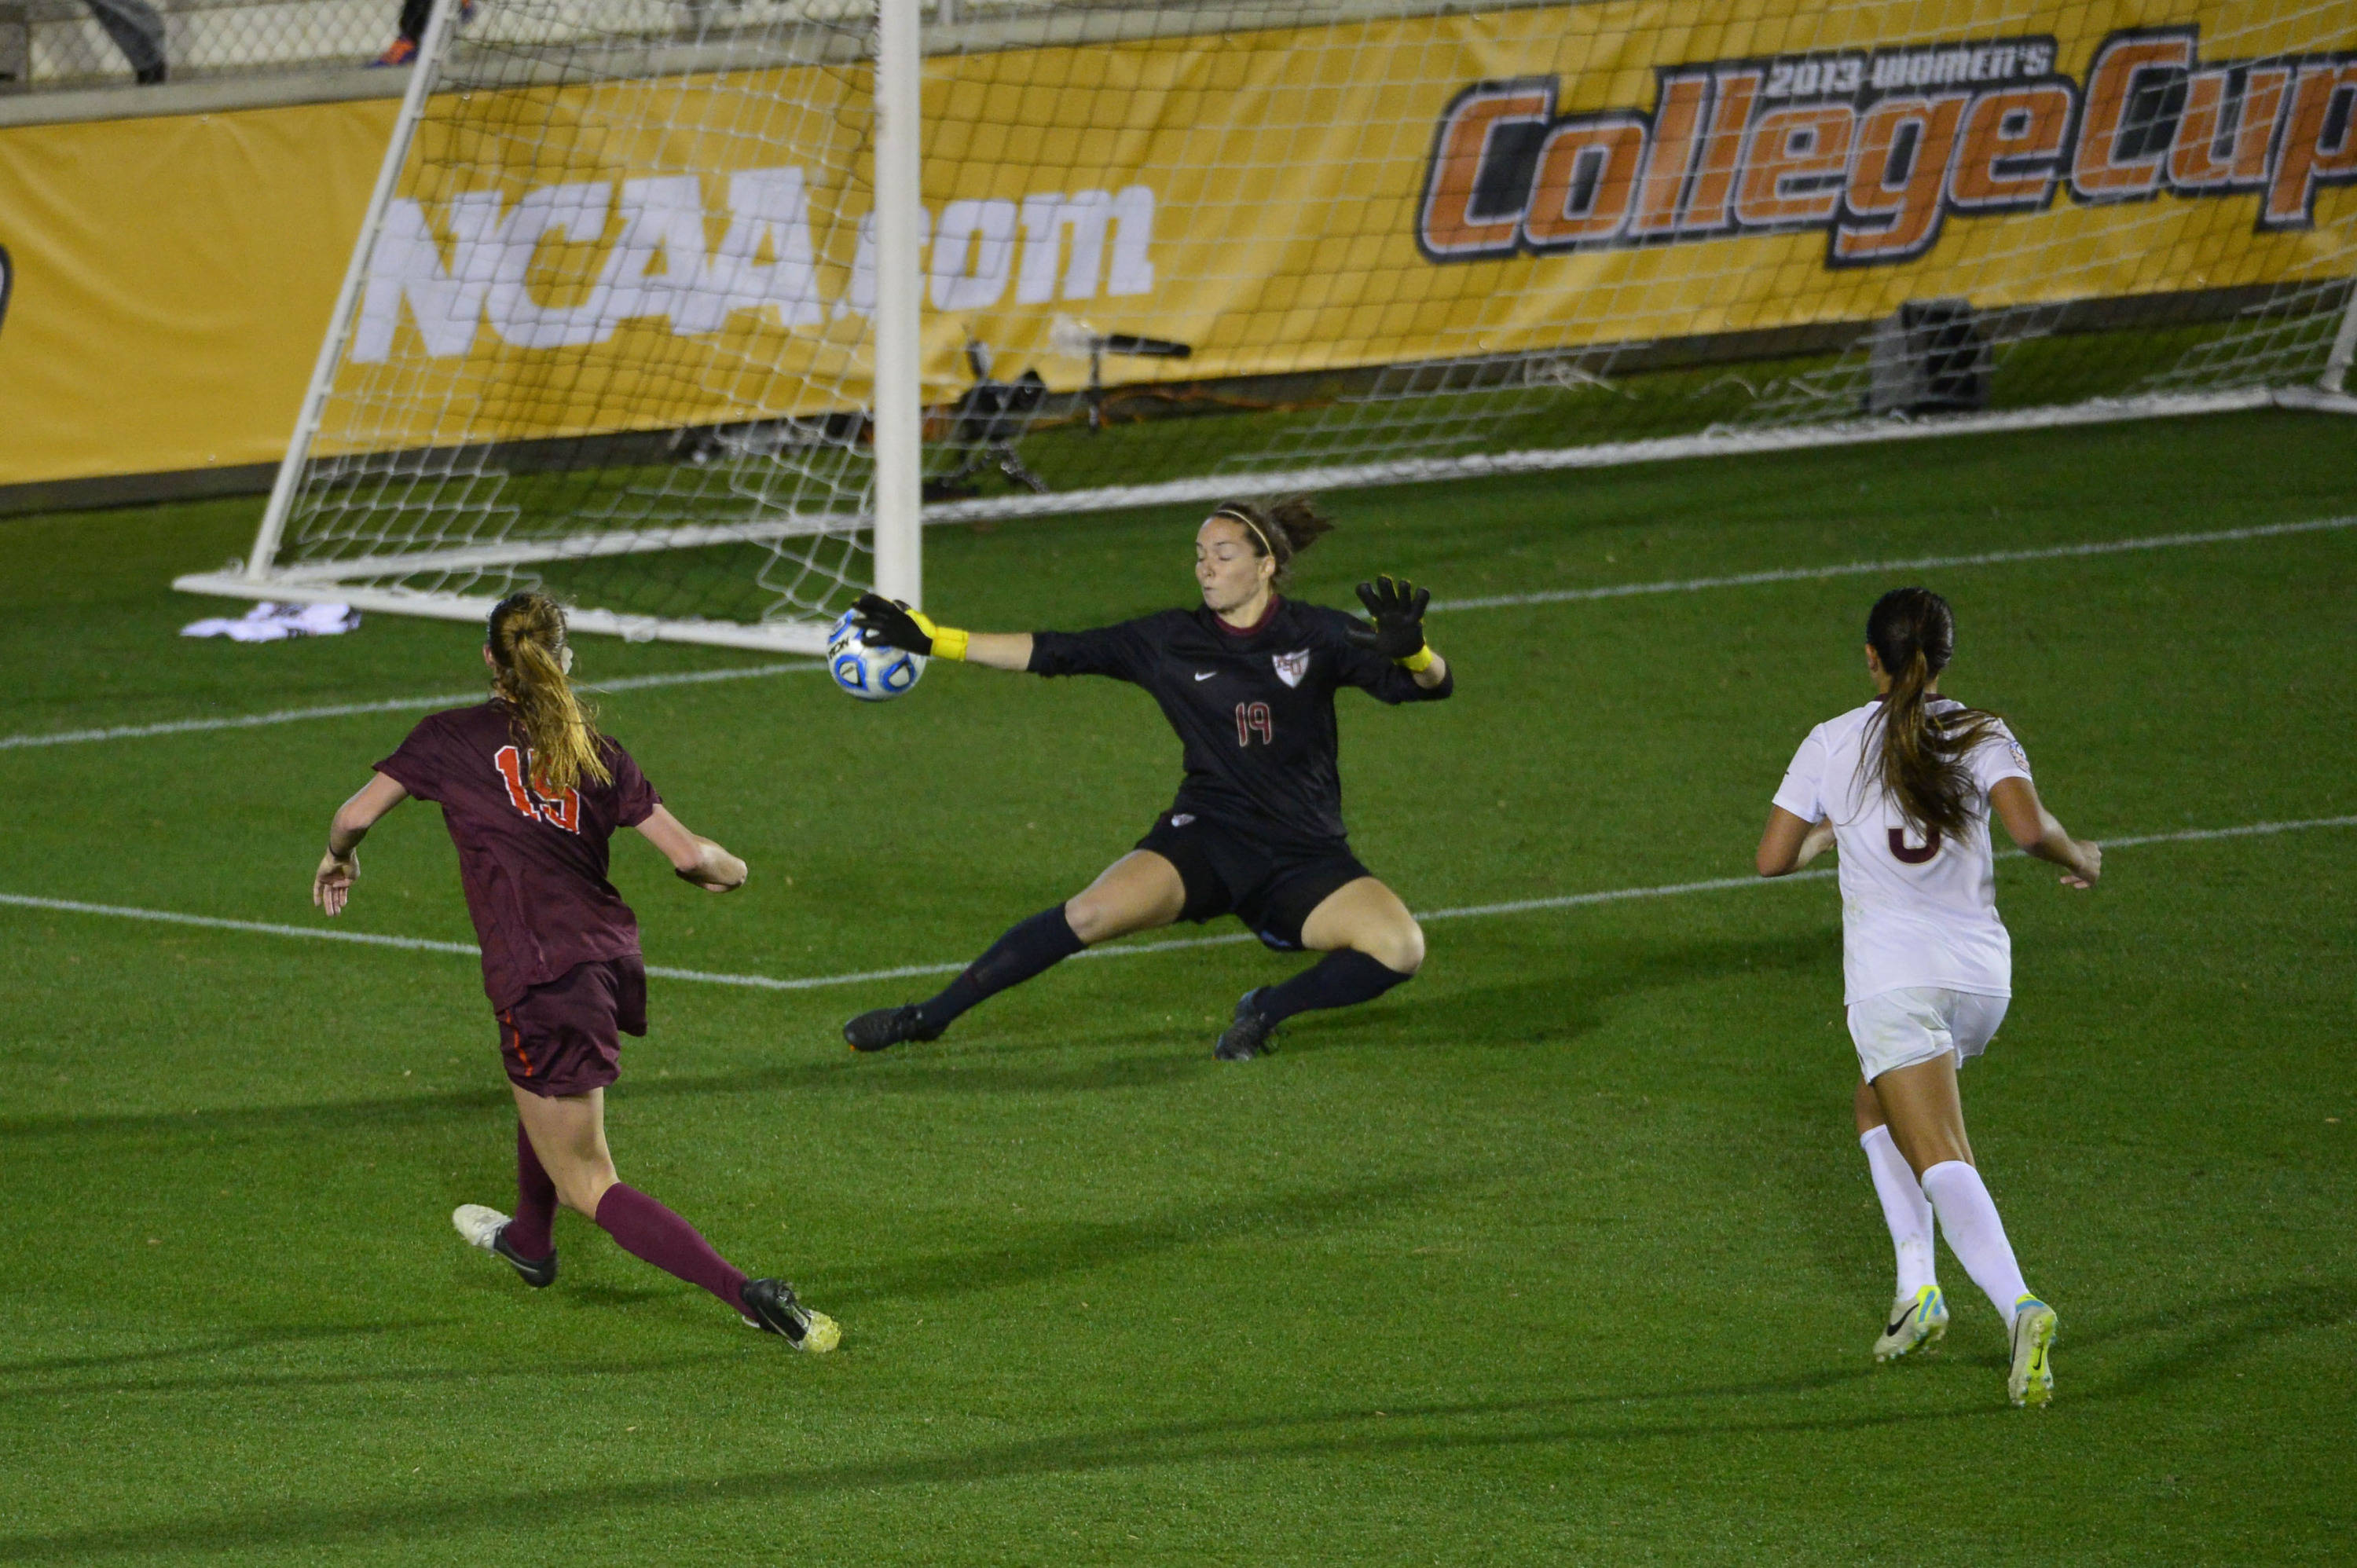 Dec 6, 2013; Cary, NC, USA; Virginia Tech Hokies midfielder Ashley Meier (15) scores a goal as Florida State Seminoles goalkeeper Kelsey Wys (19) and forward Nickolette Driesse (3) defend in the second half. The Seminoles defeated the Hokies 3-2 at WakeMed Soccer Park. Mandatory Credit: Bob Donnan-USA TODAY Sports